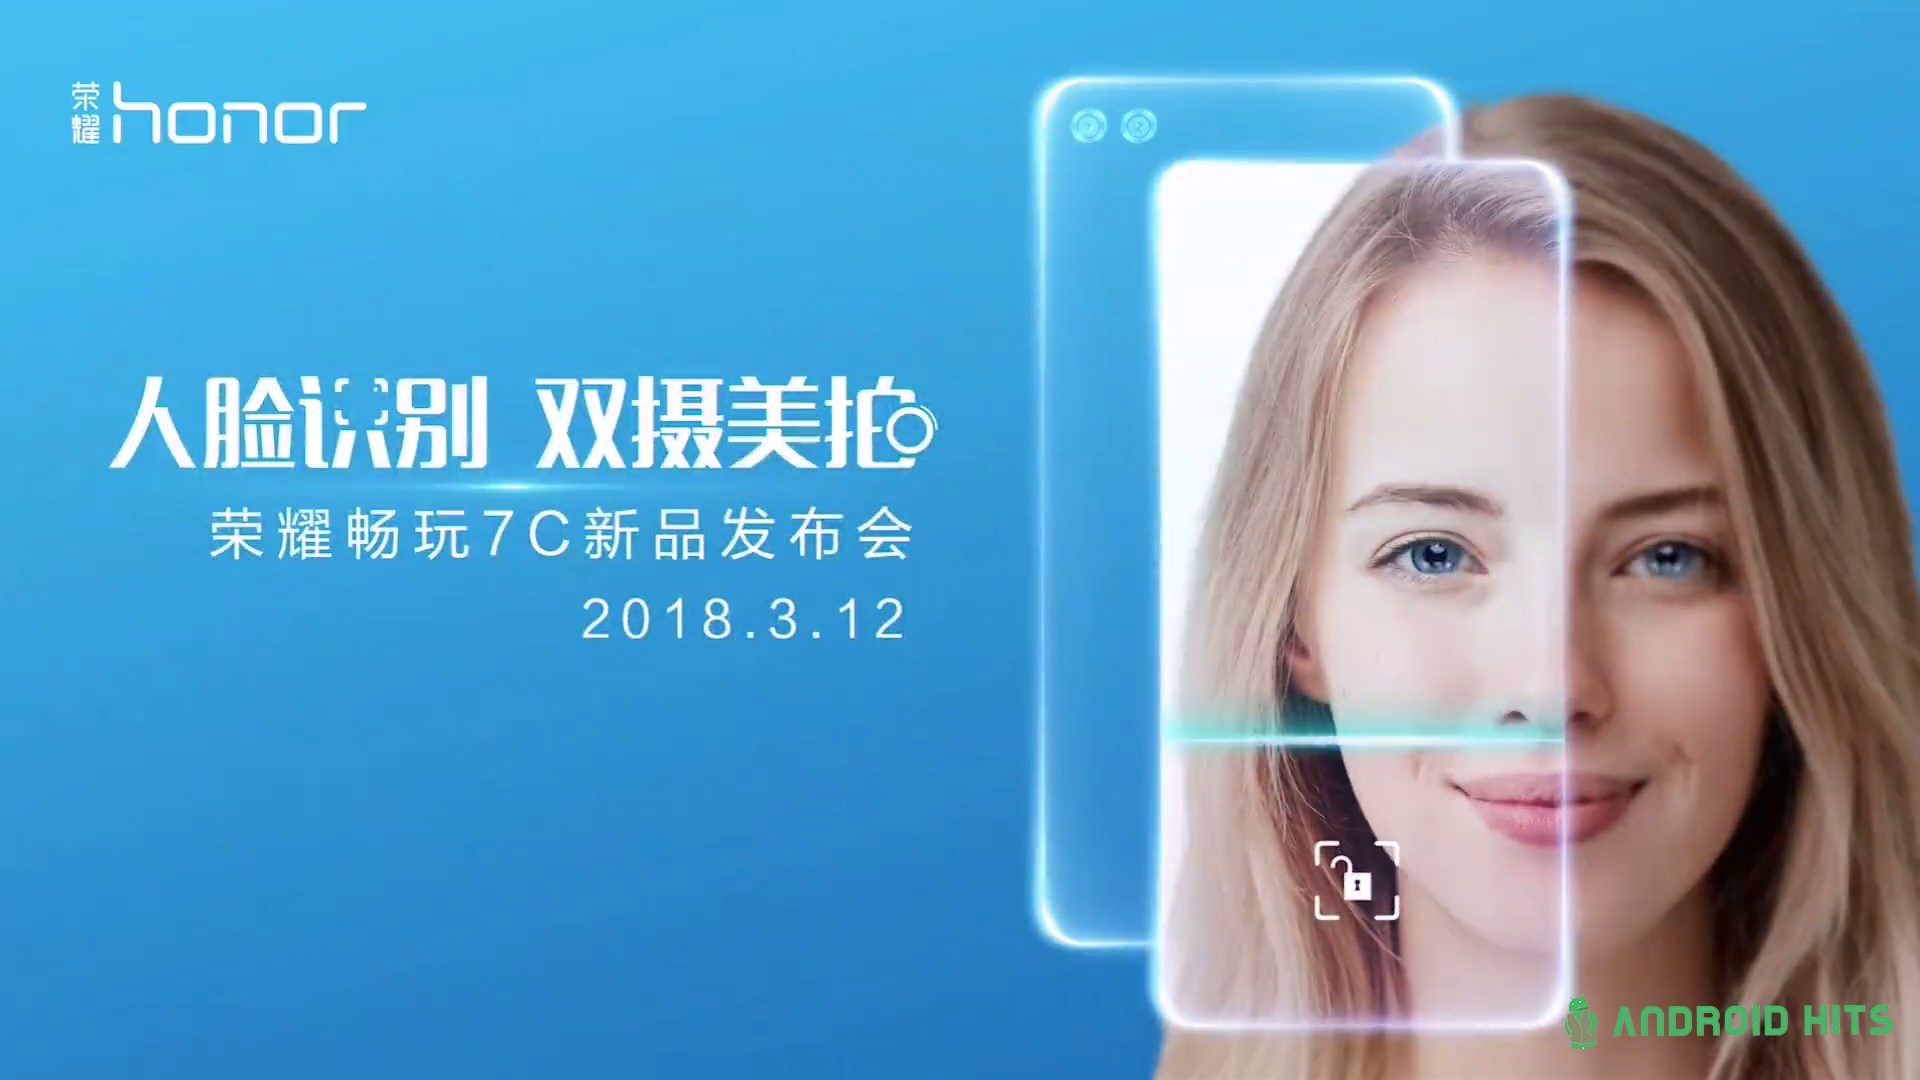 Huawei Honor 7C with Snapdragon 450 SoC is Set for China Launch